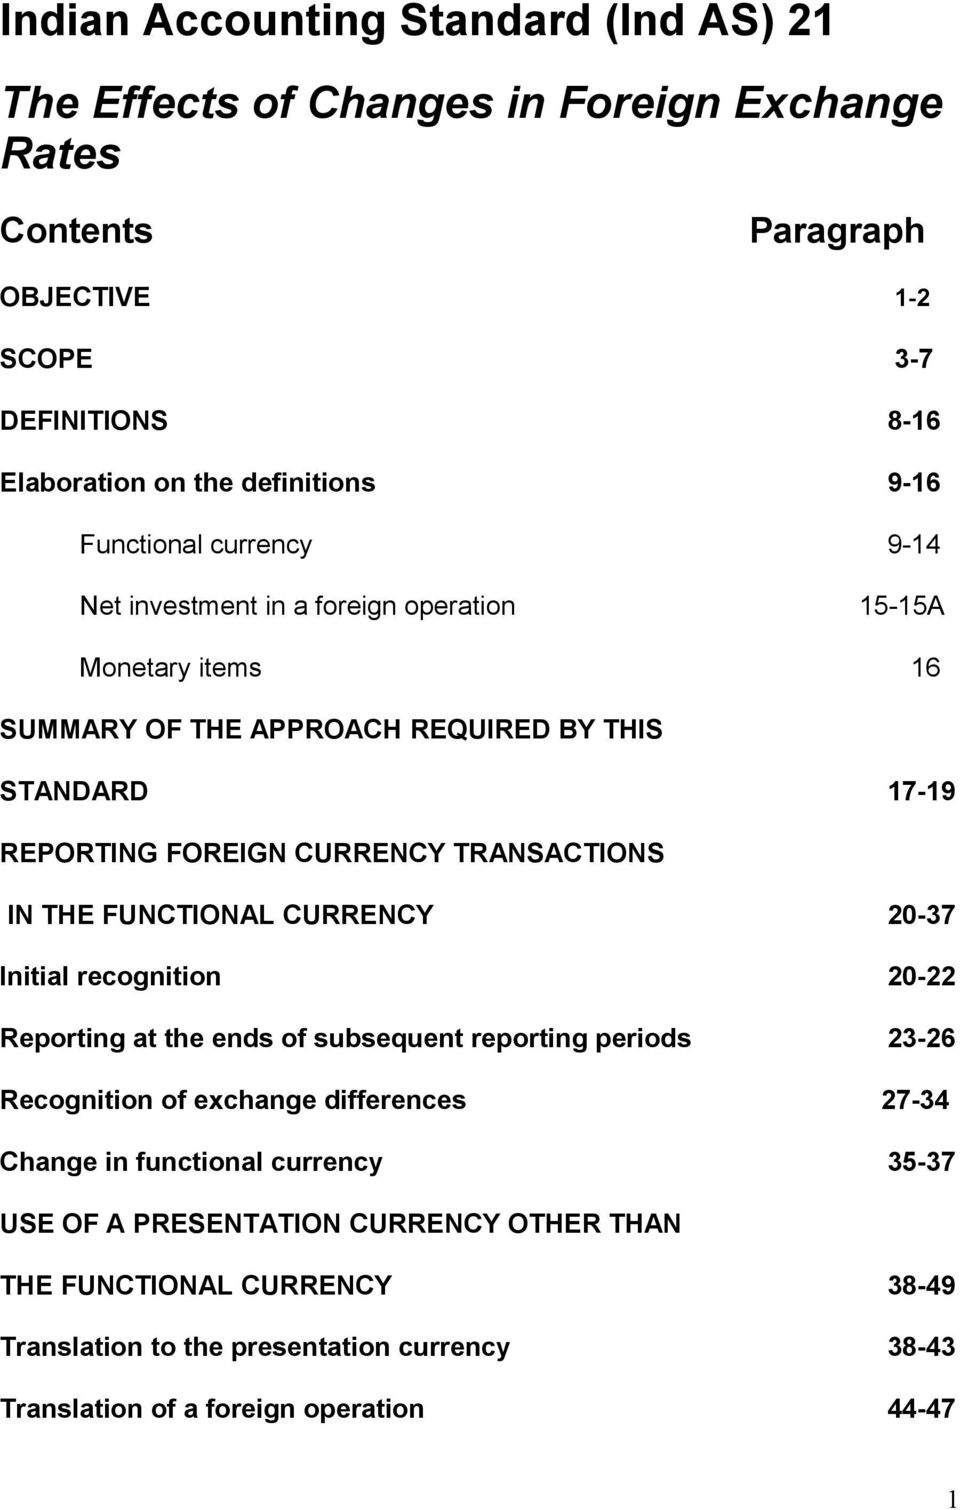 TRANSACTIONS IN THE FUNCTIONAL CURRENCY 20-37 Initial recognition 20-22 Reporting at the ends of subsequent reporting periods 23-26 Recognition of exchange differences 27-34 Change